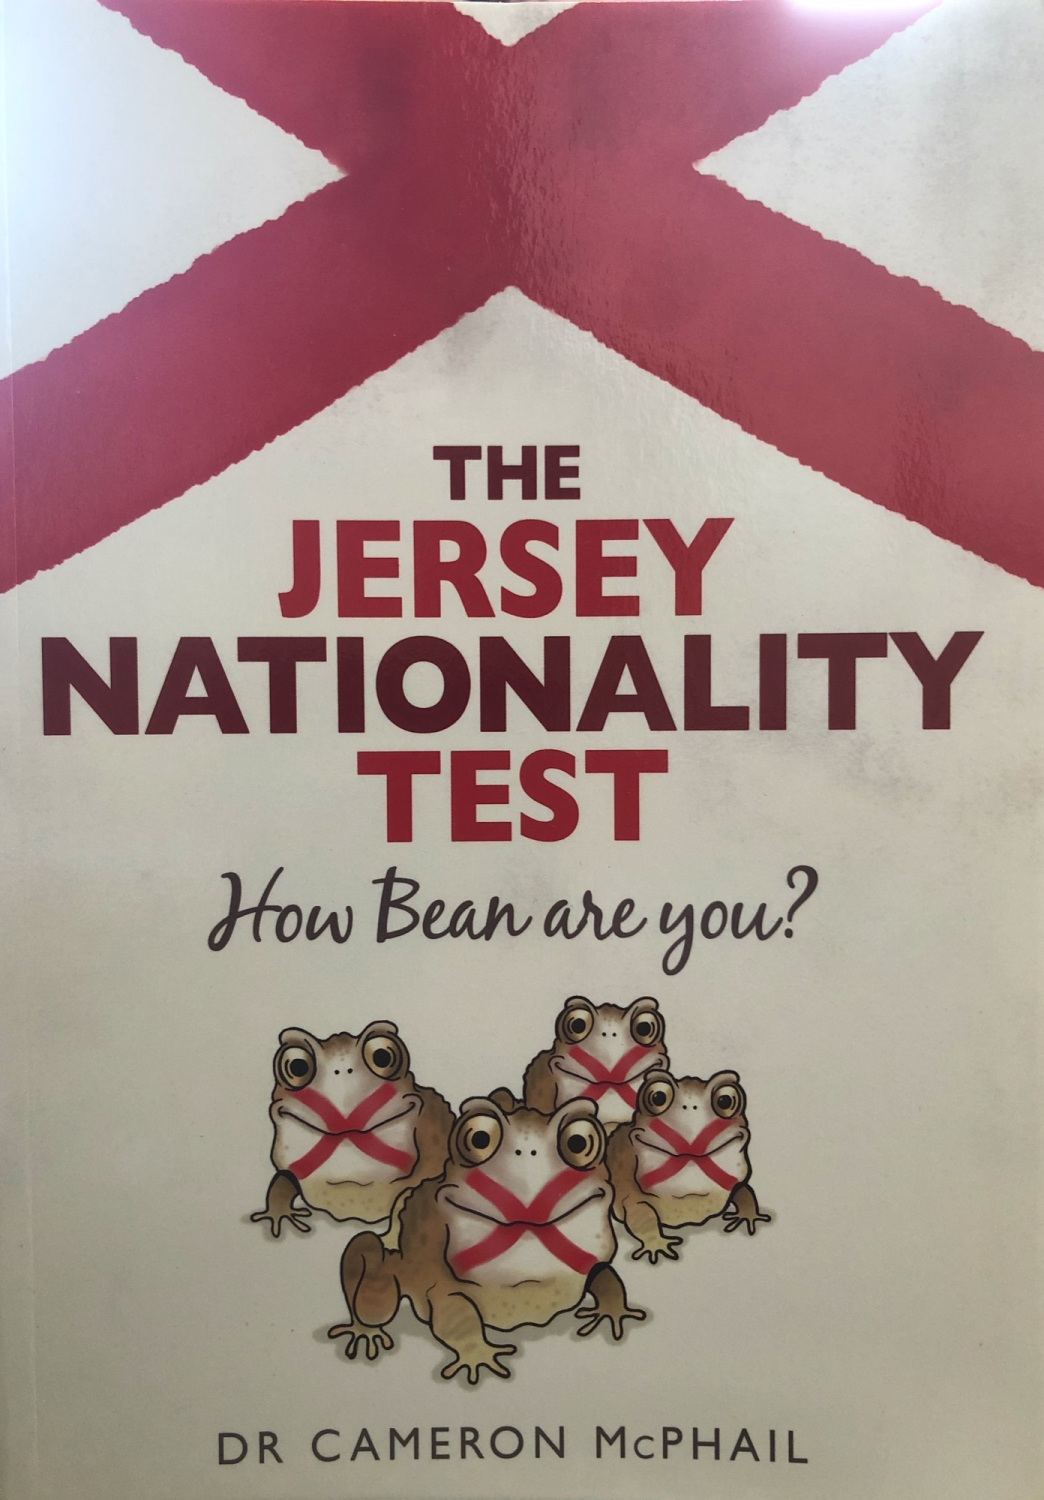 The Jersey Nationality Test